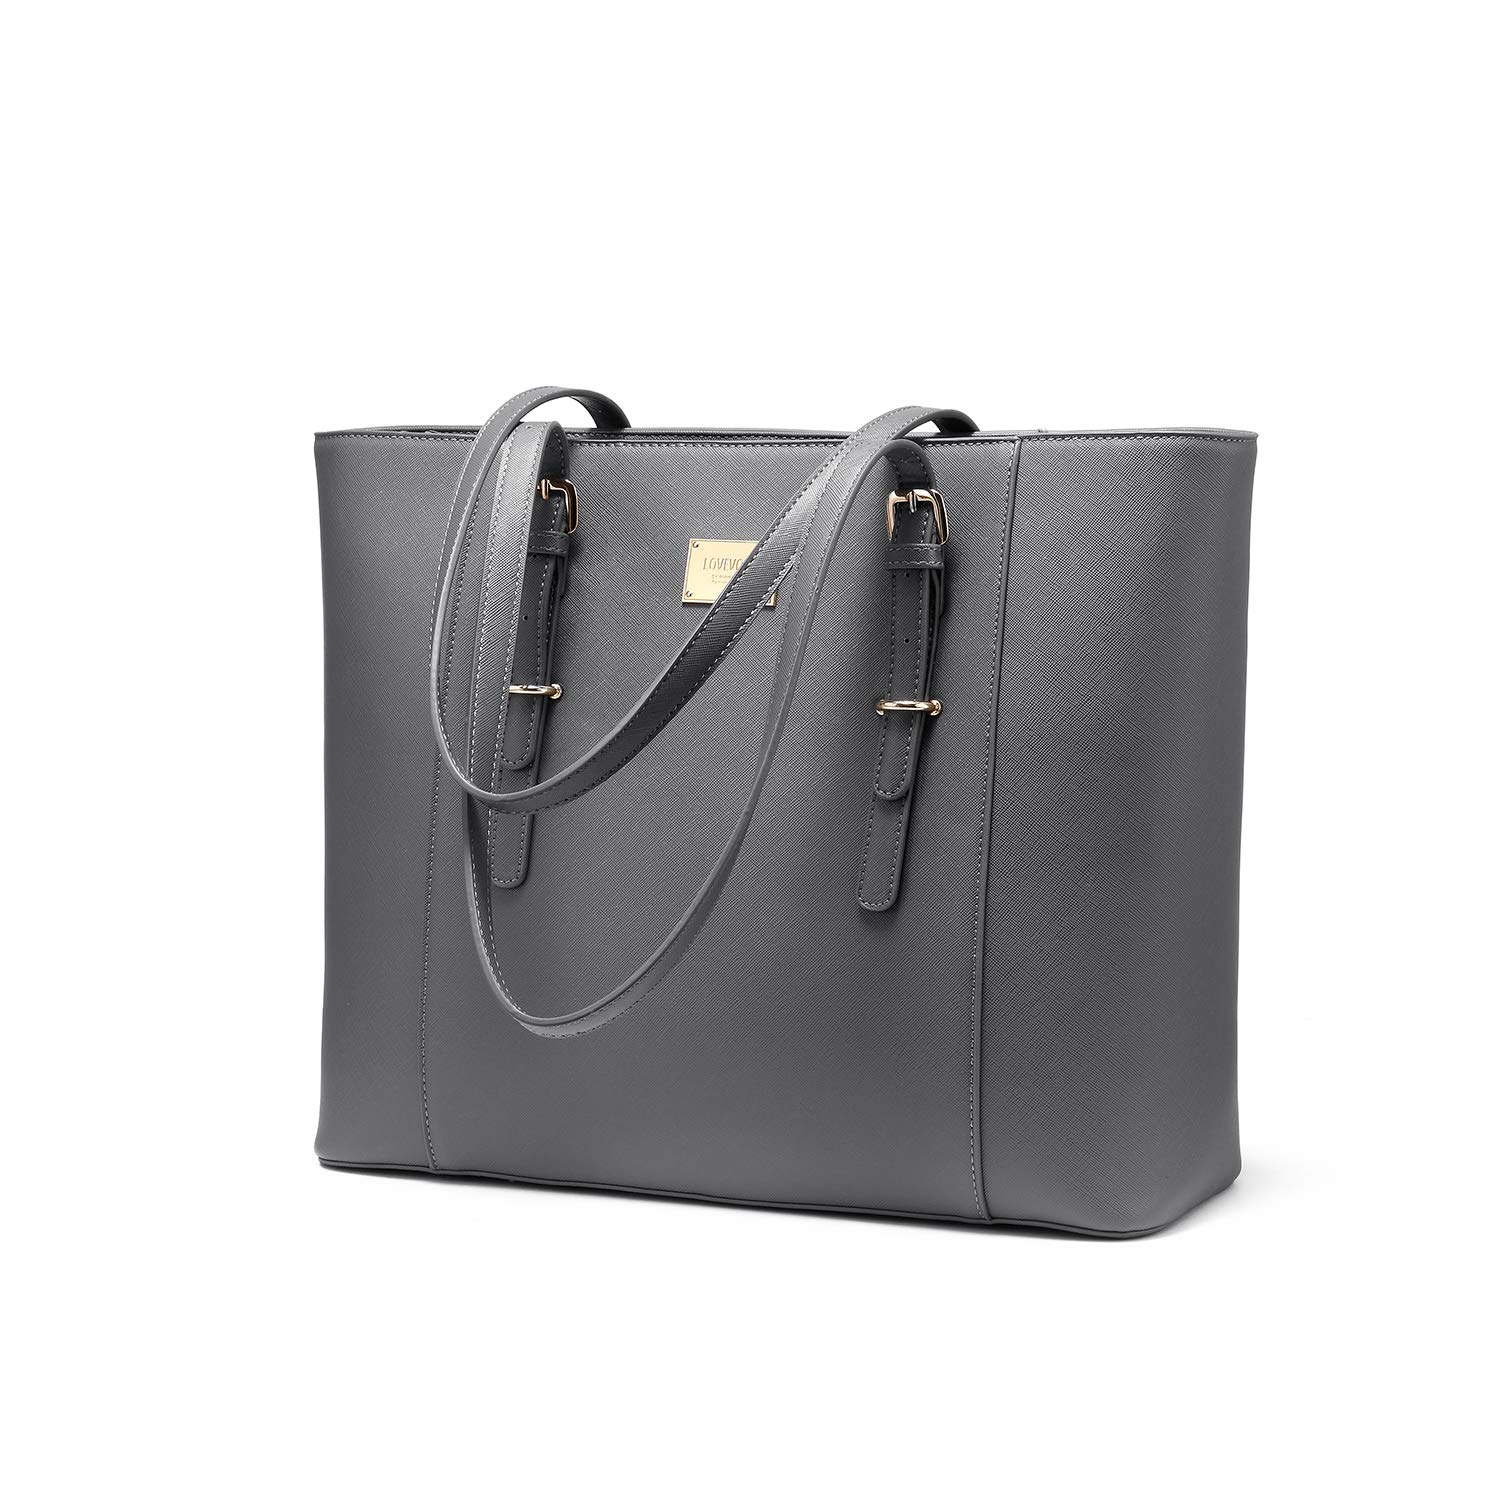 7fe387980c97 Laptop Bag for Women Large Office Handbags Briefcase Fits Up to 15.6 inch  (Updated Version)-Grey